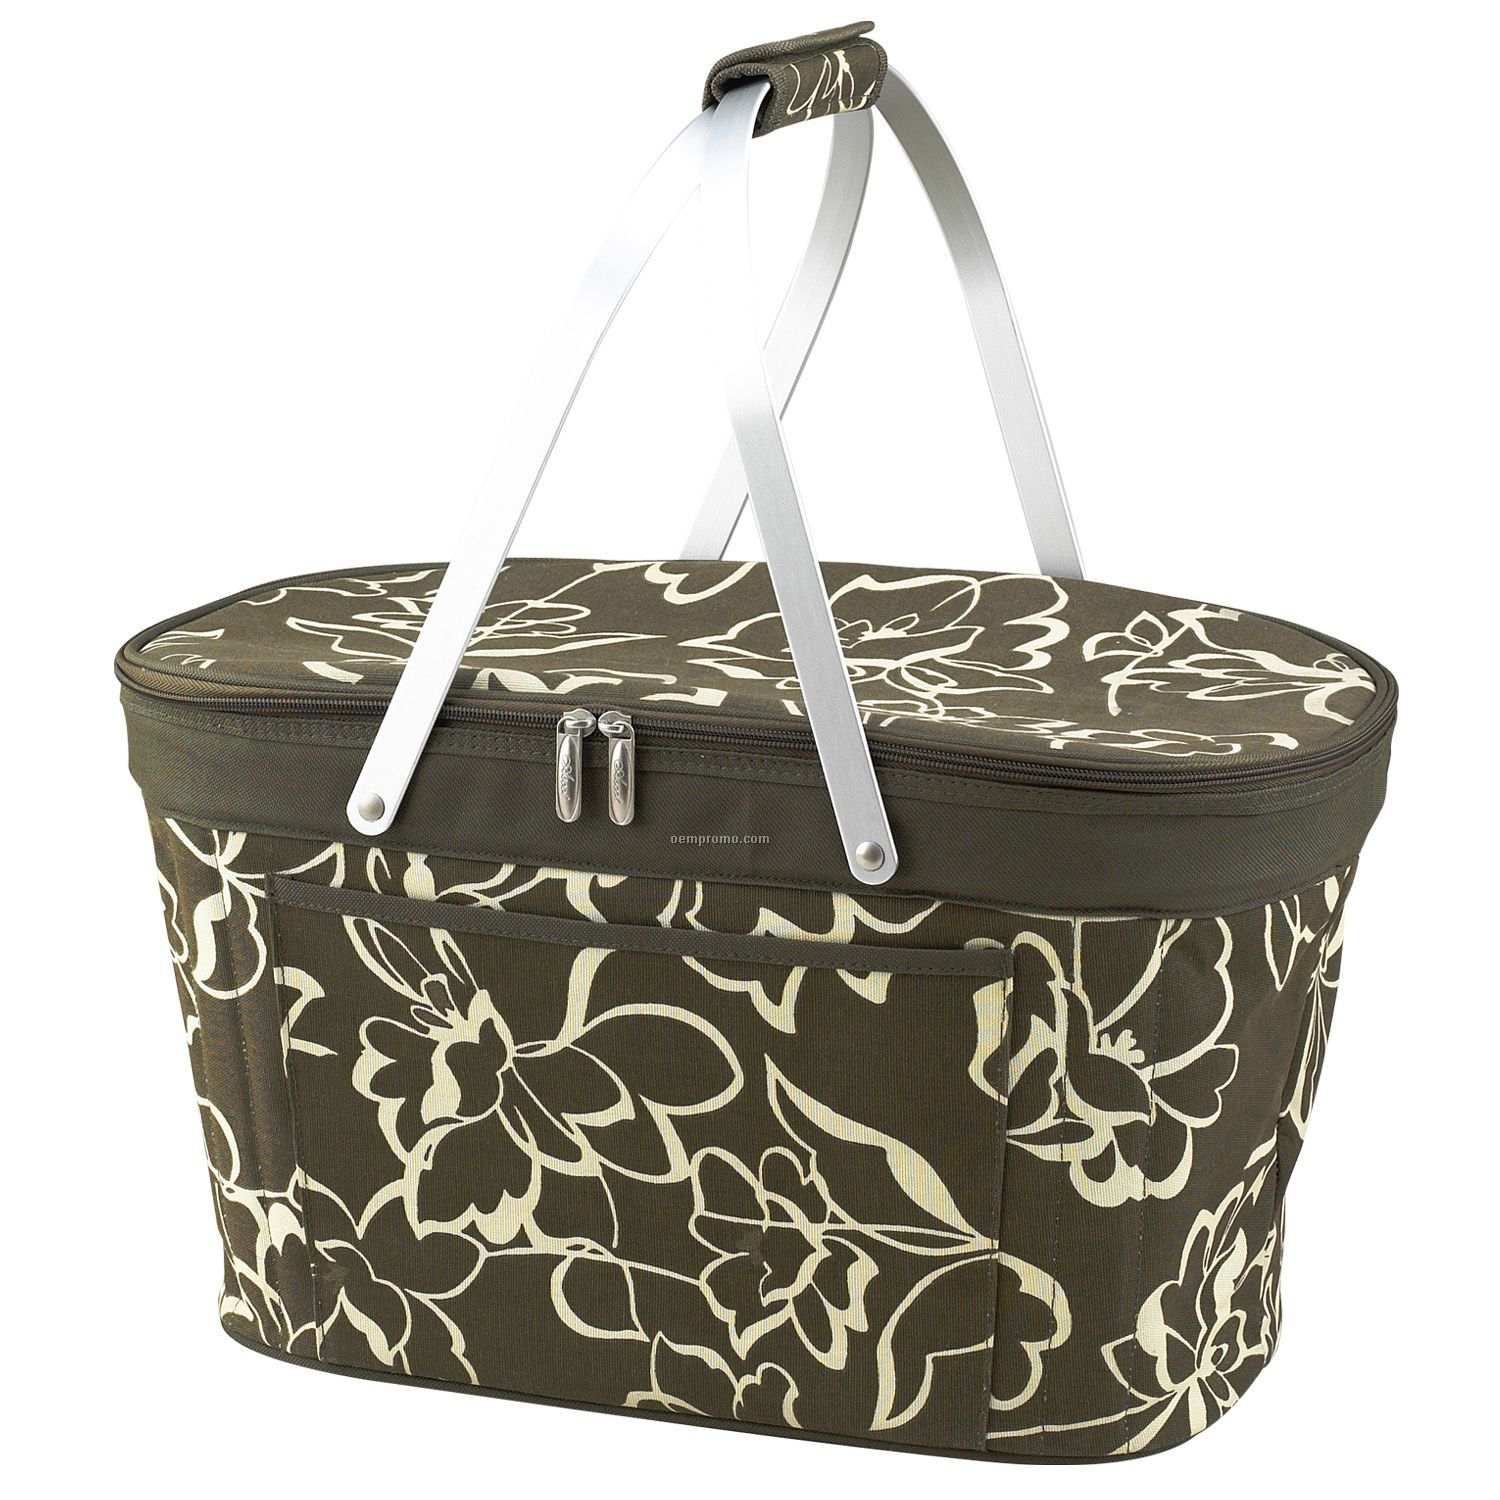 Collapsible Insulated Picnic Basket For 4 : Hamptons picnic basket cooler tote bag for two china